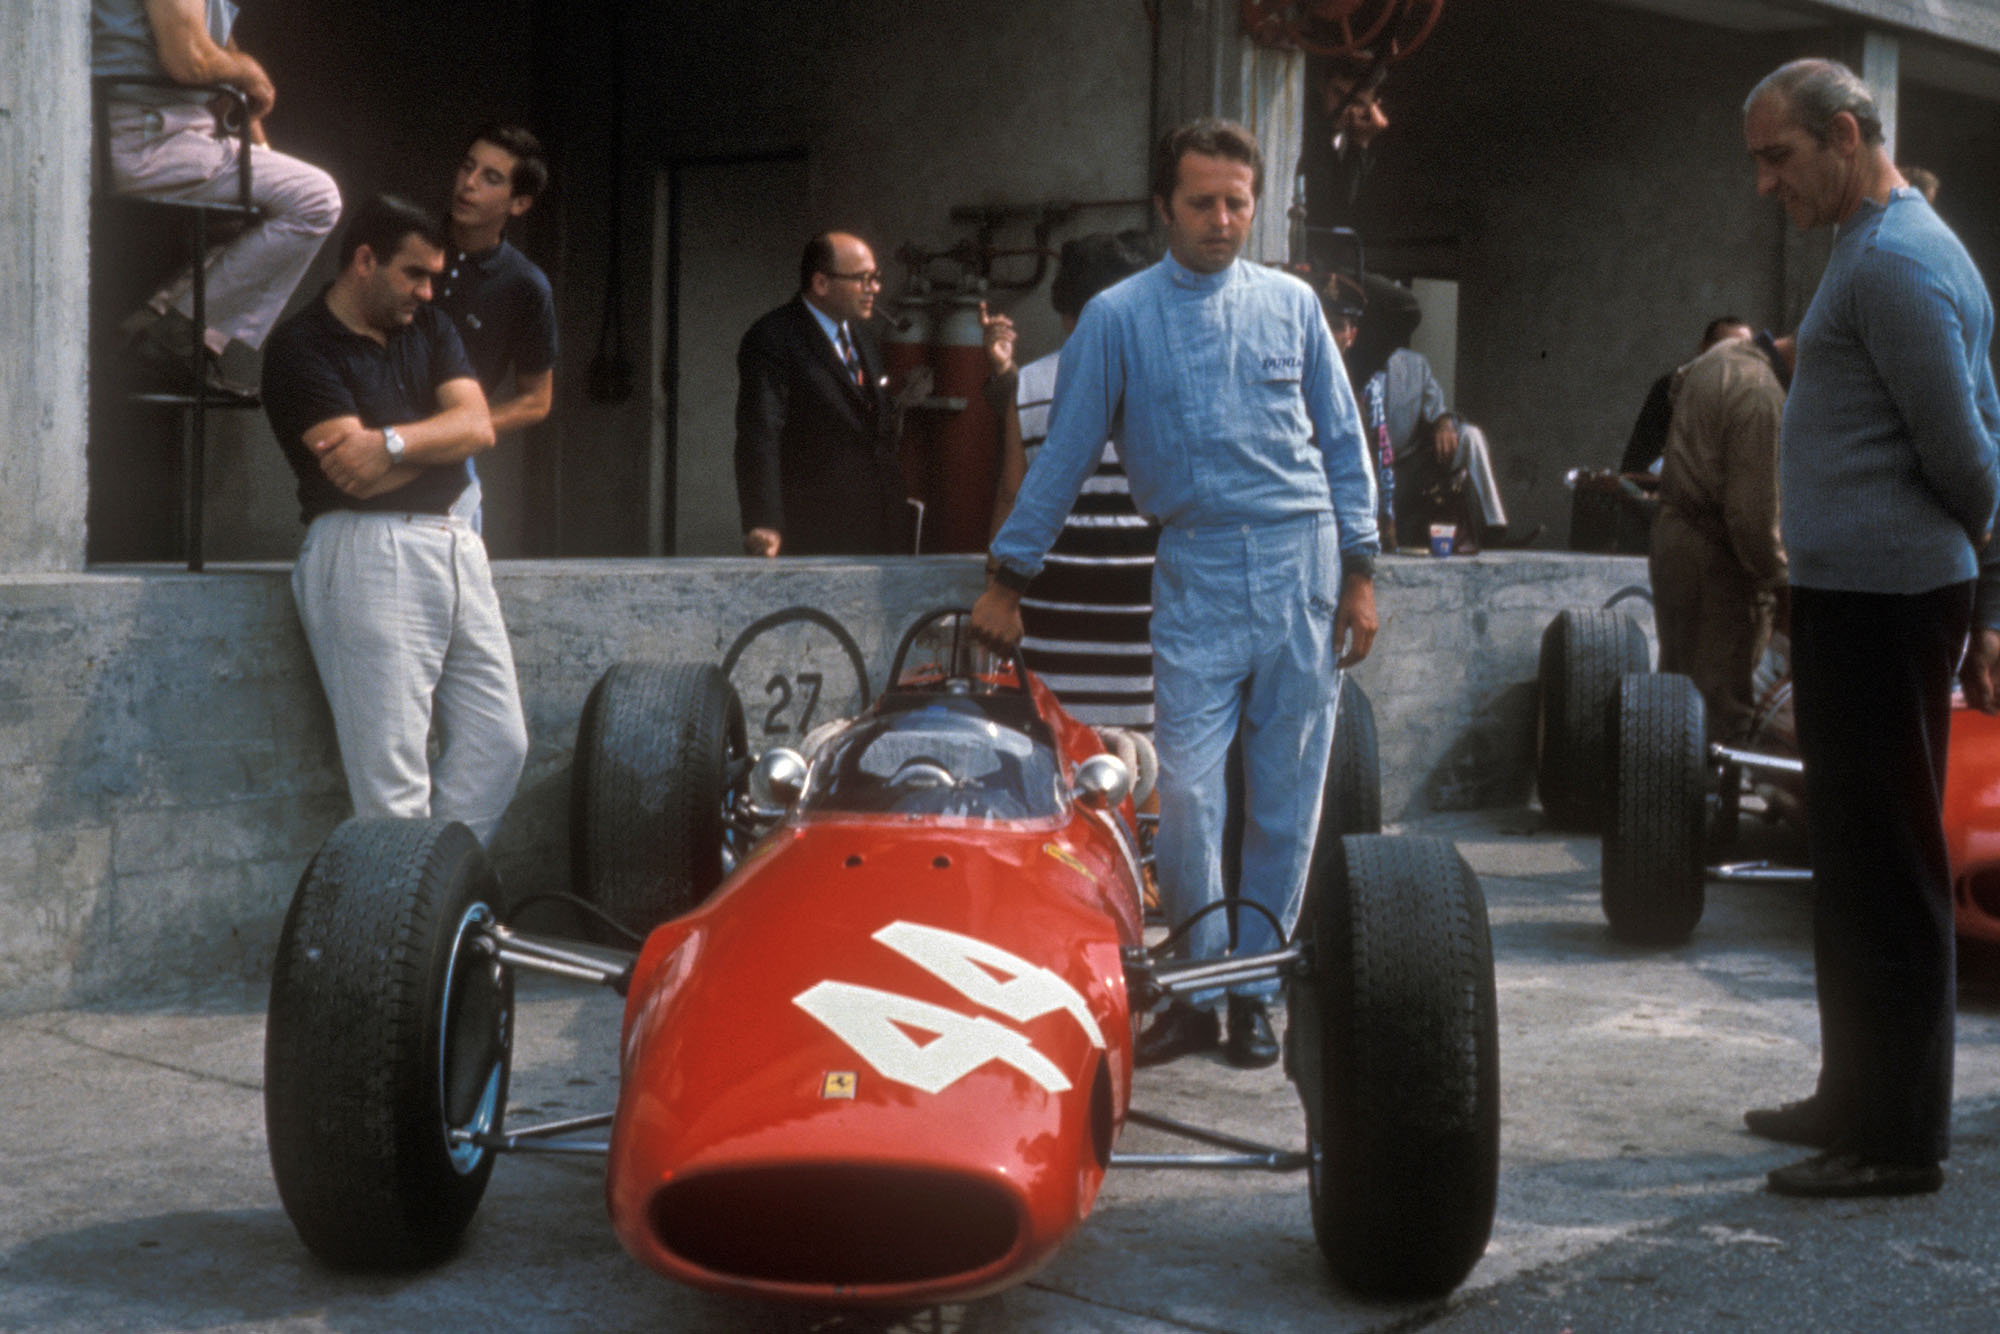 Giancarlo Baghetti with the Ferrari he drove for Reg Parnell in the 1966 Italian Grand Prix at Monza. The car was loaned to him by Ferrari.